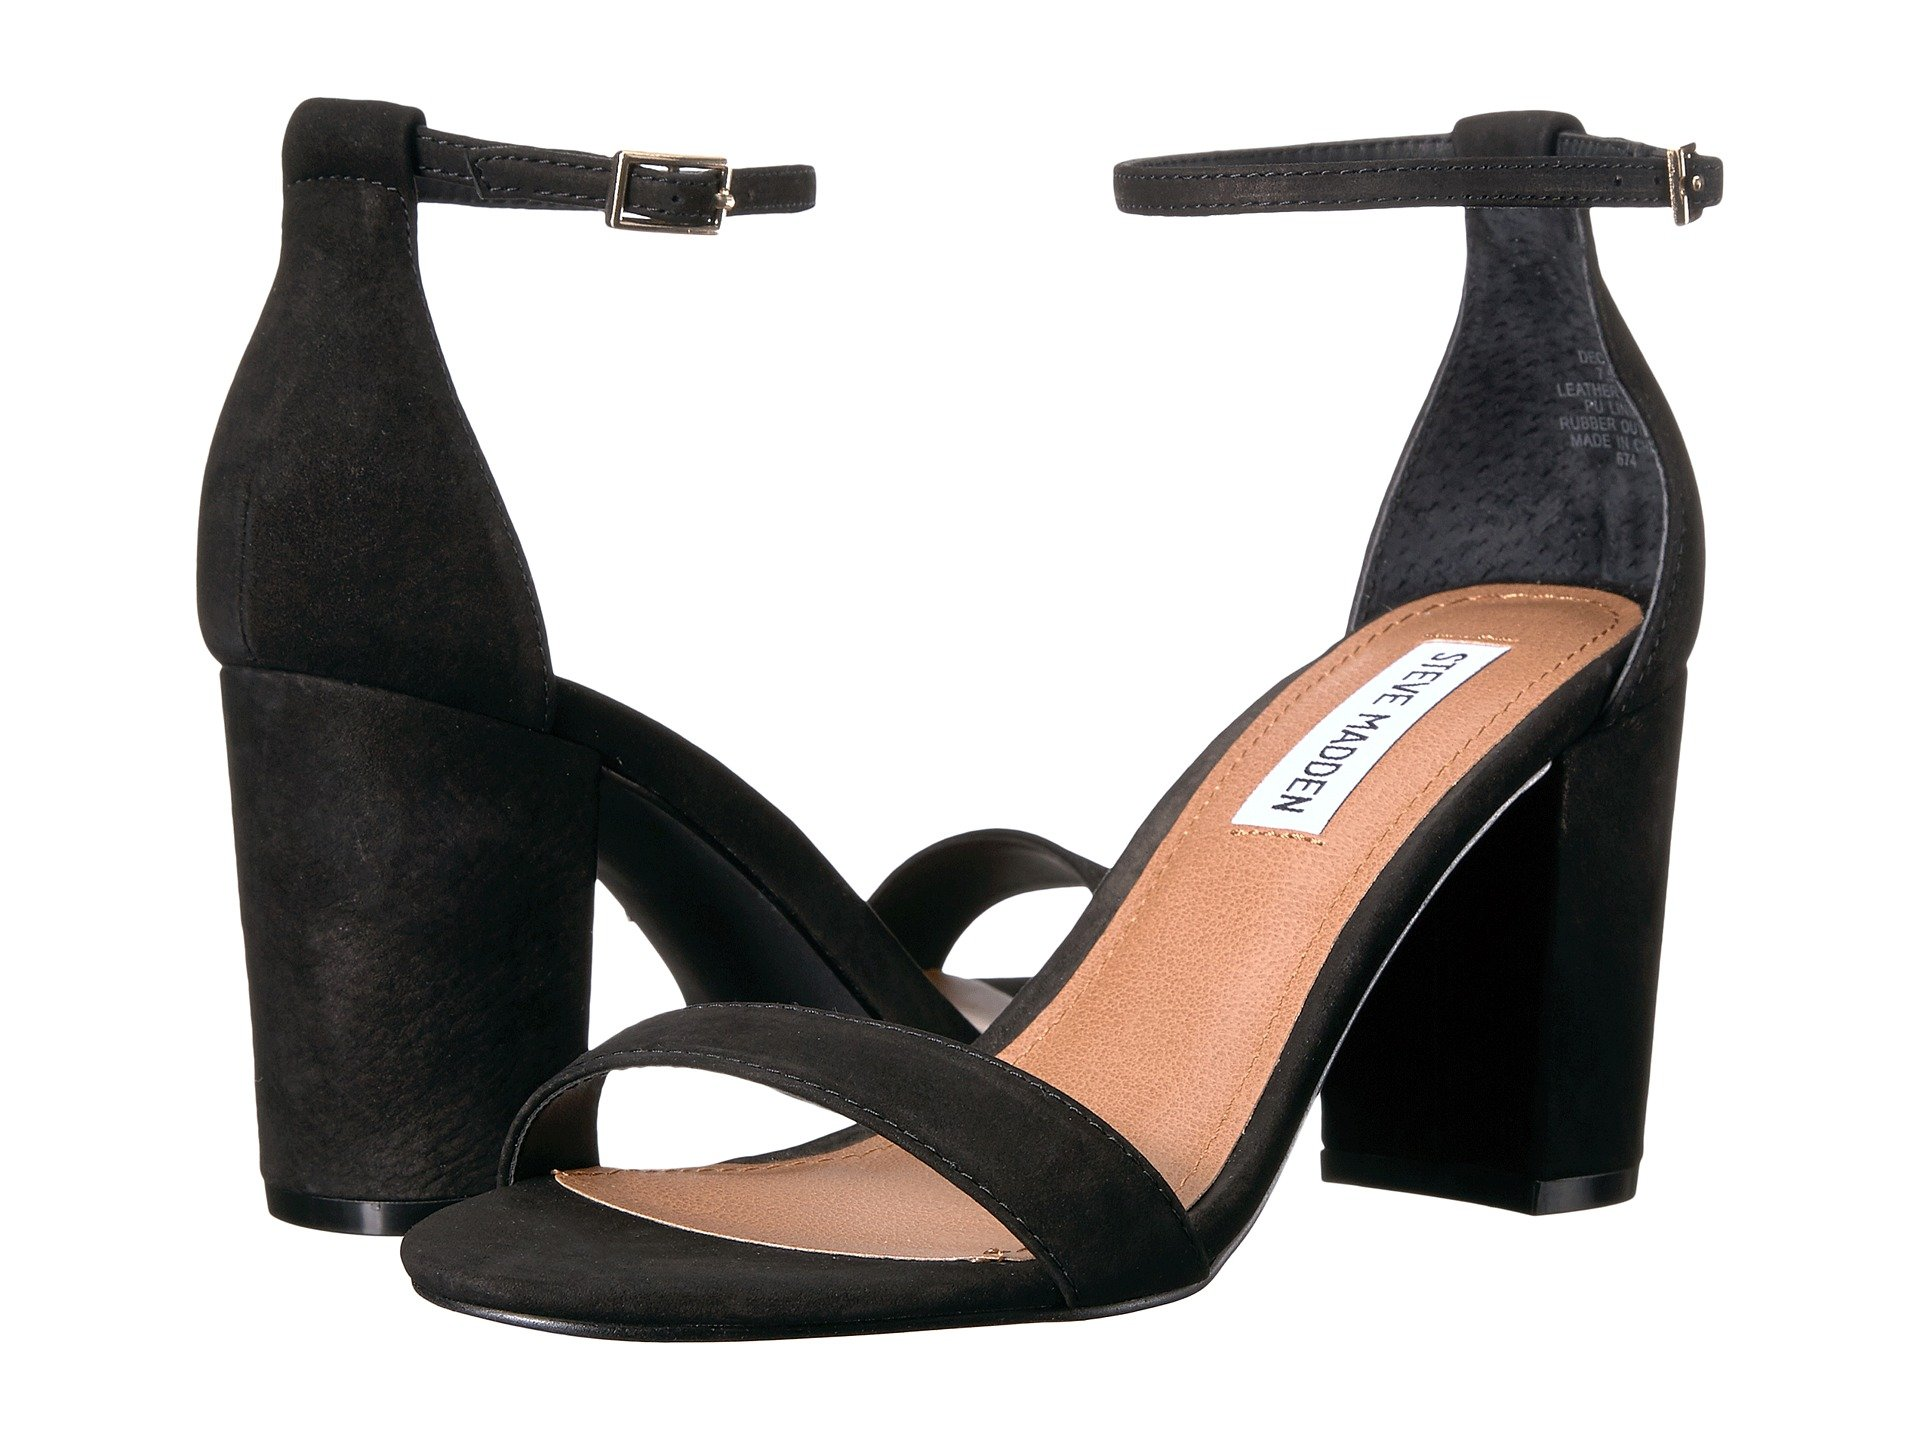 Steve Madden Exclusive Declair At Zappos Com